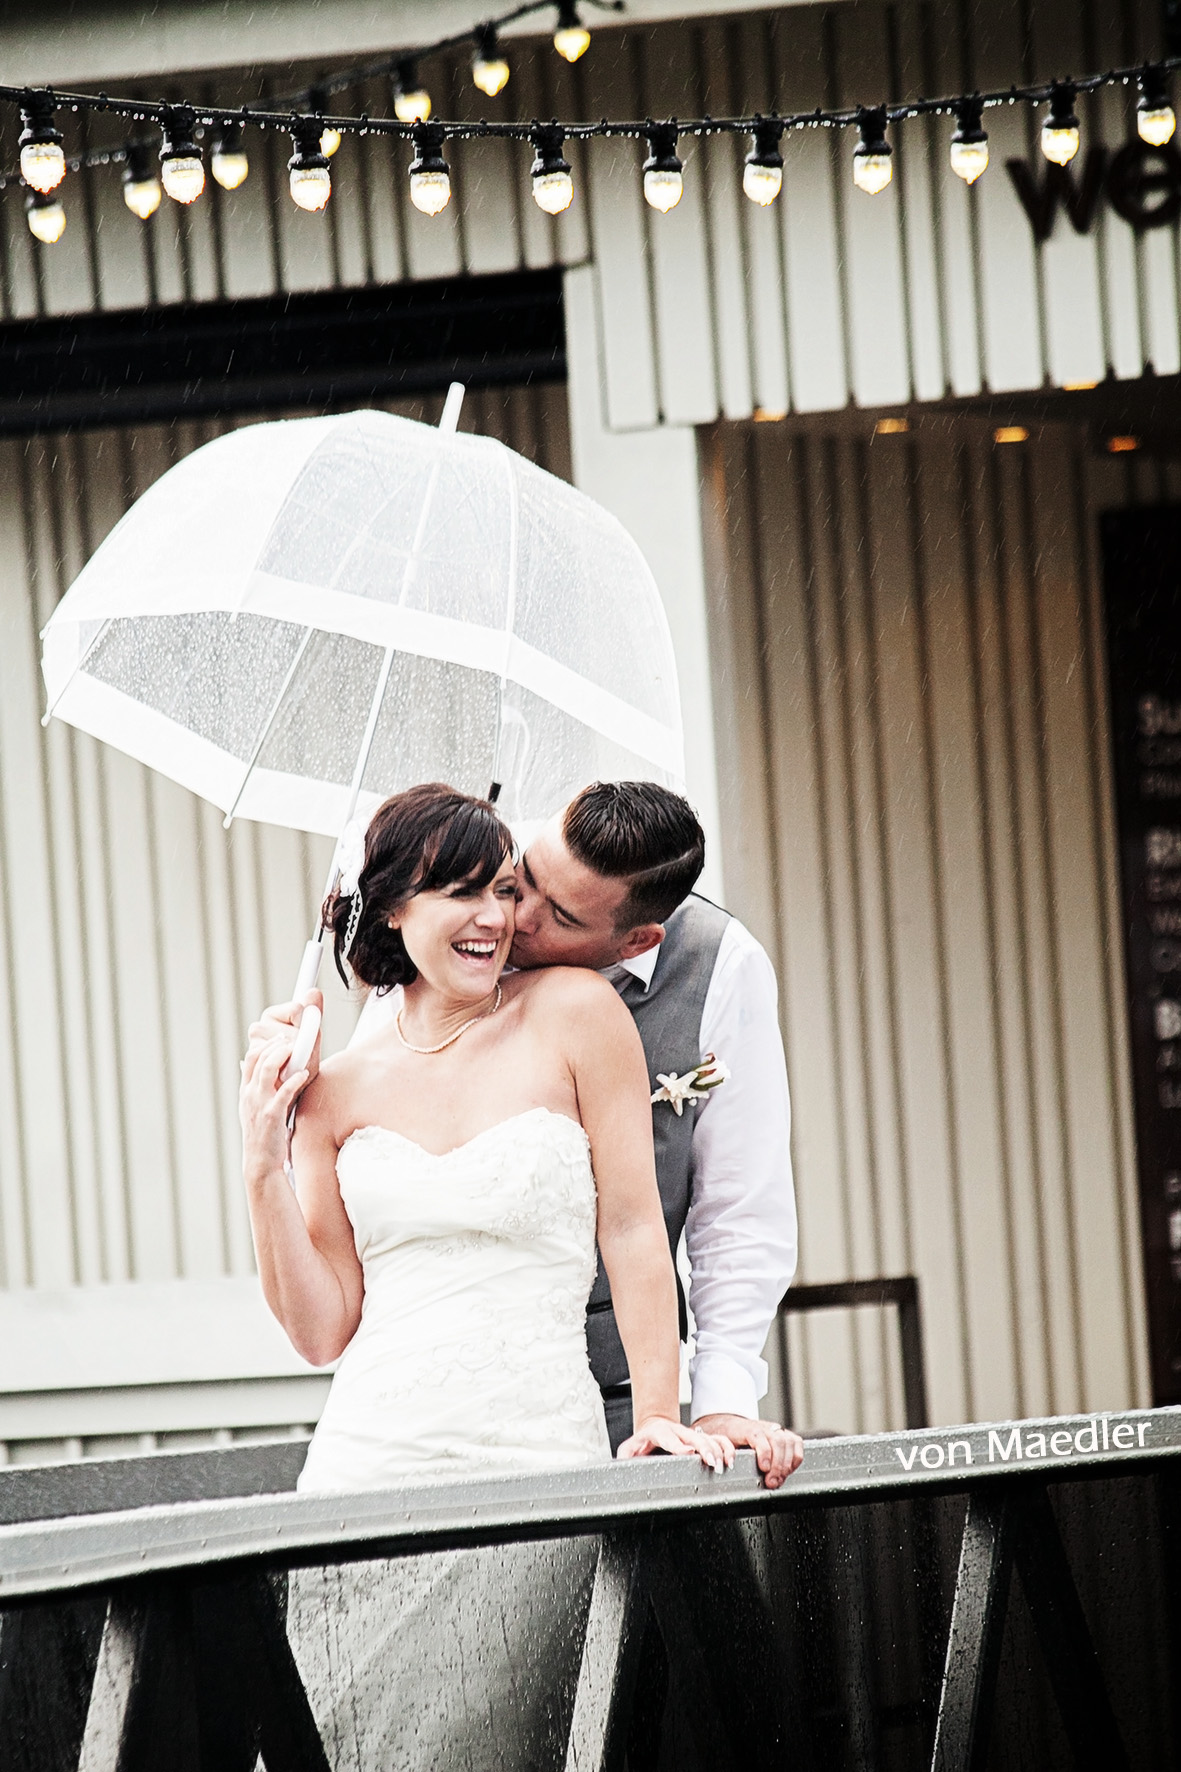 von Maedler - Wedding Photography - vonm.com.au - 088